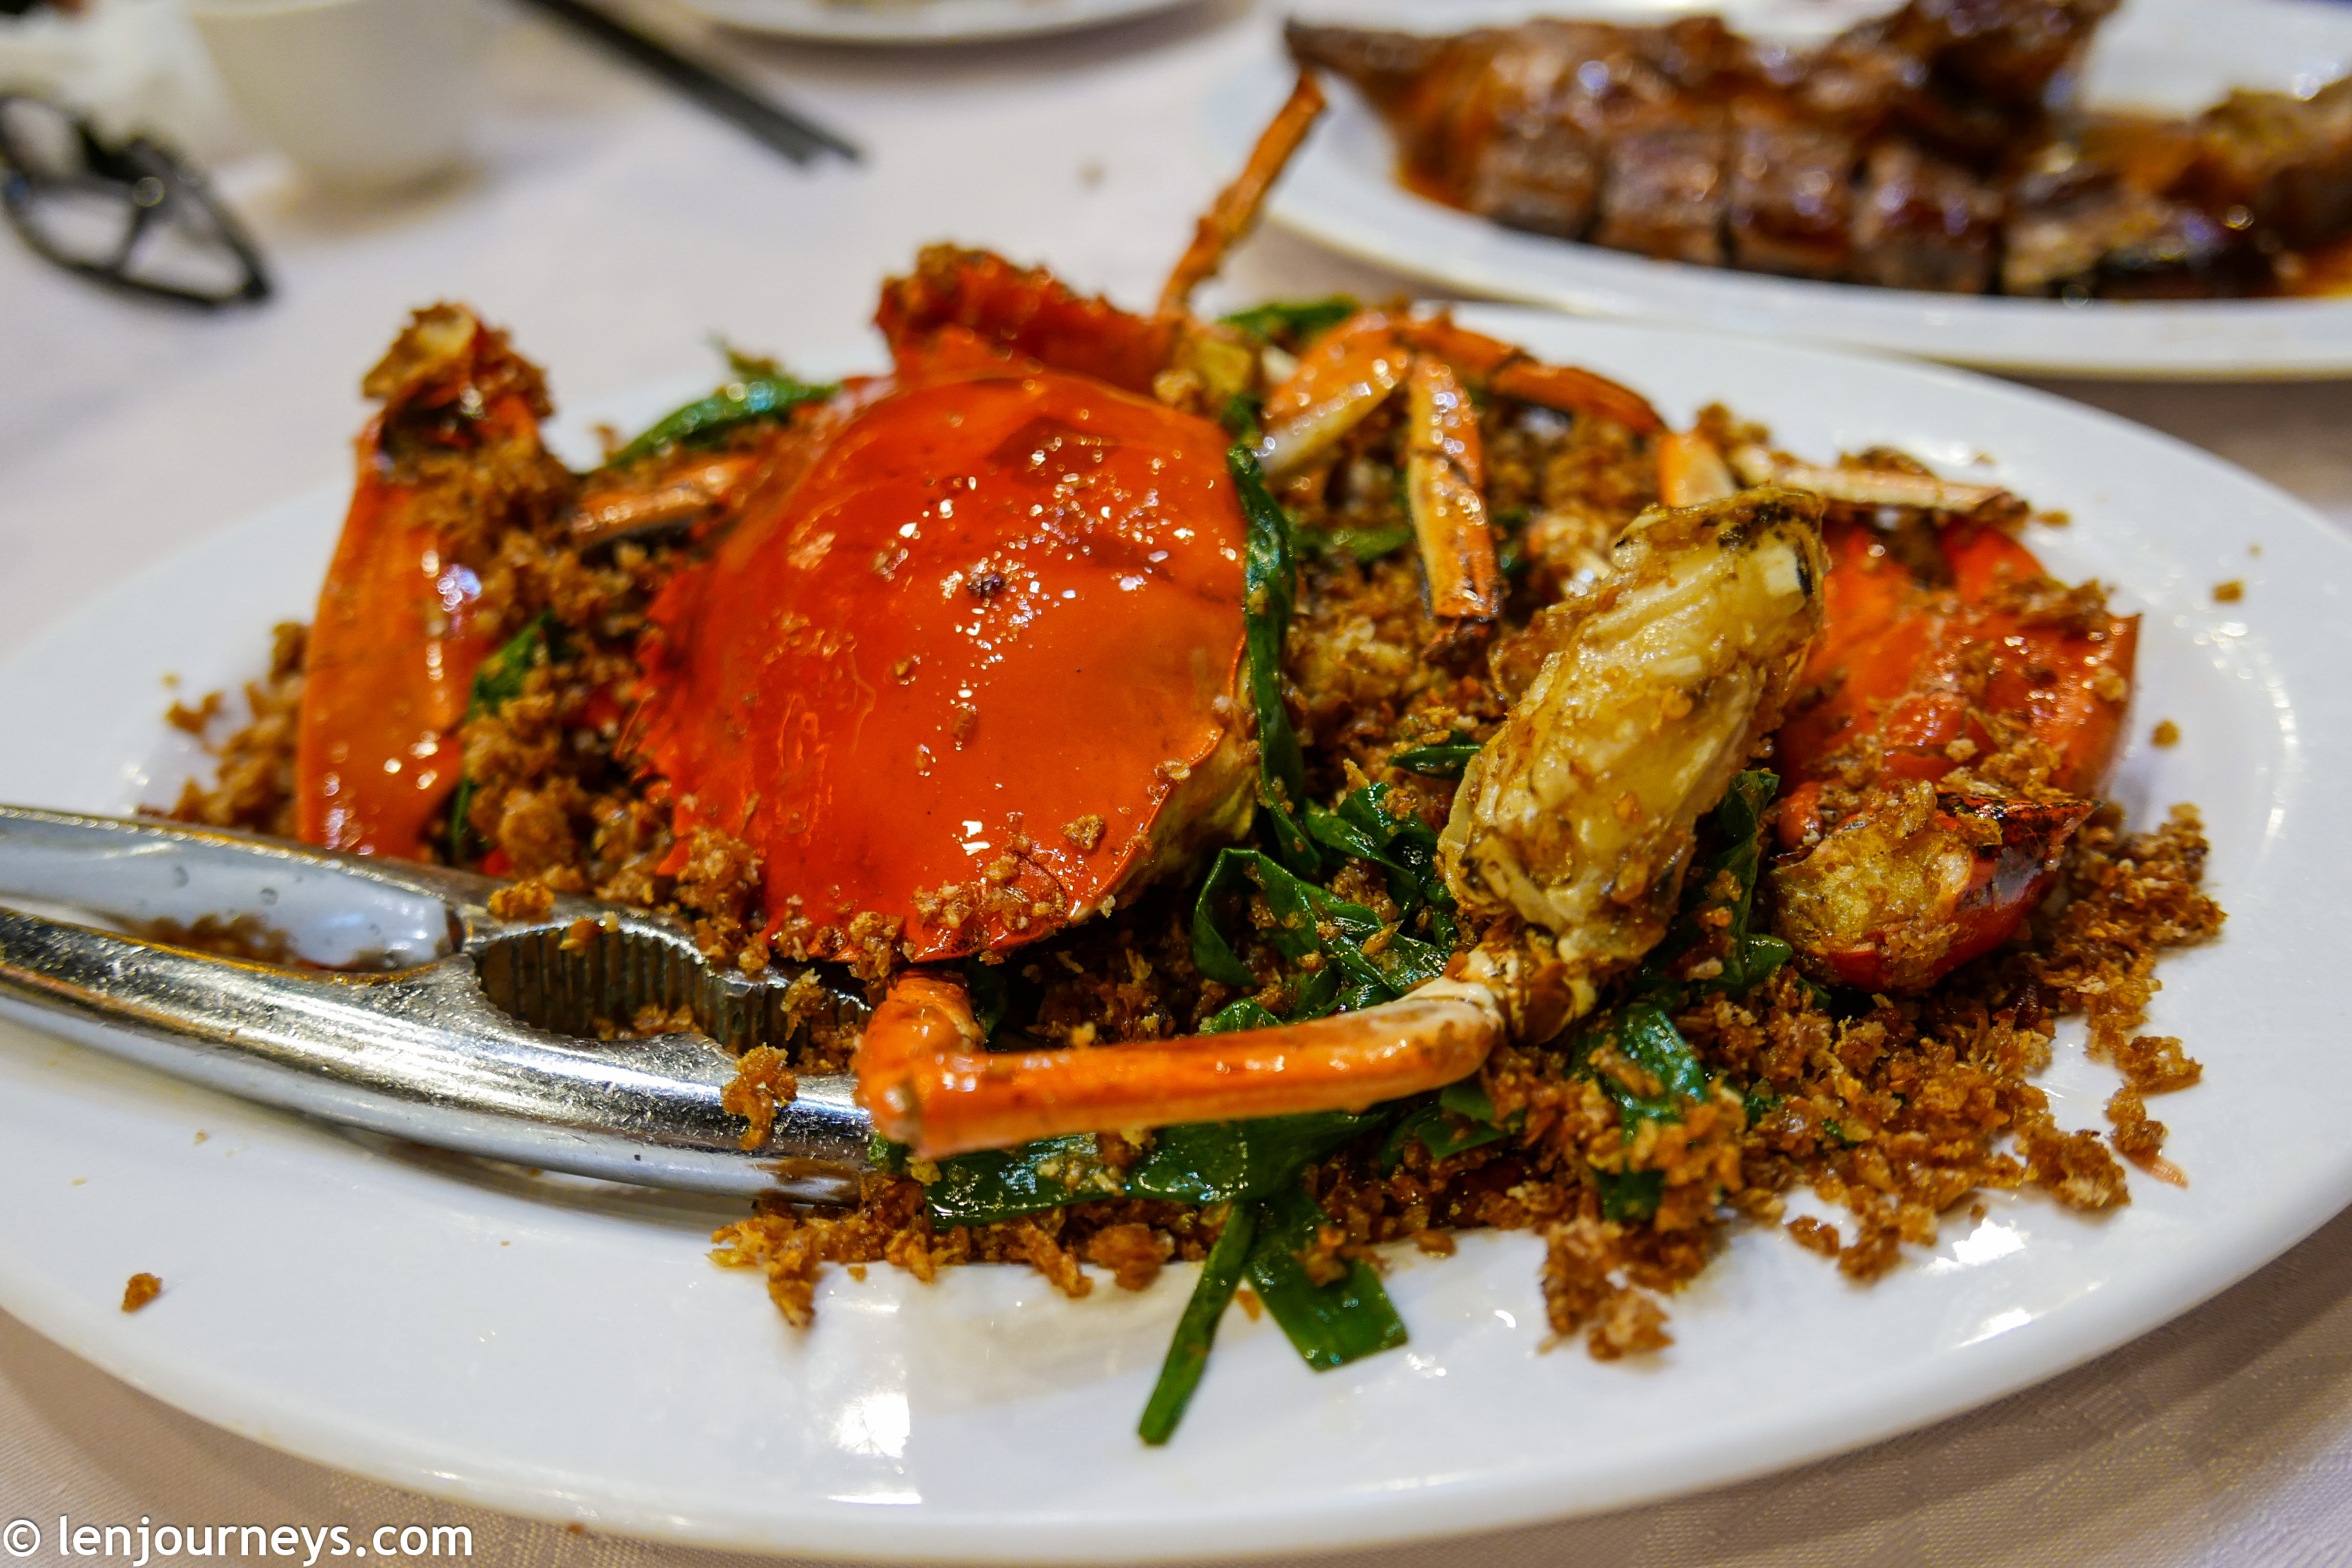 Spicy crabs, a specialty of Hong Kong